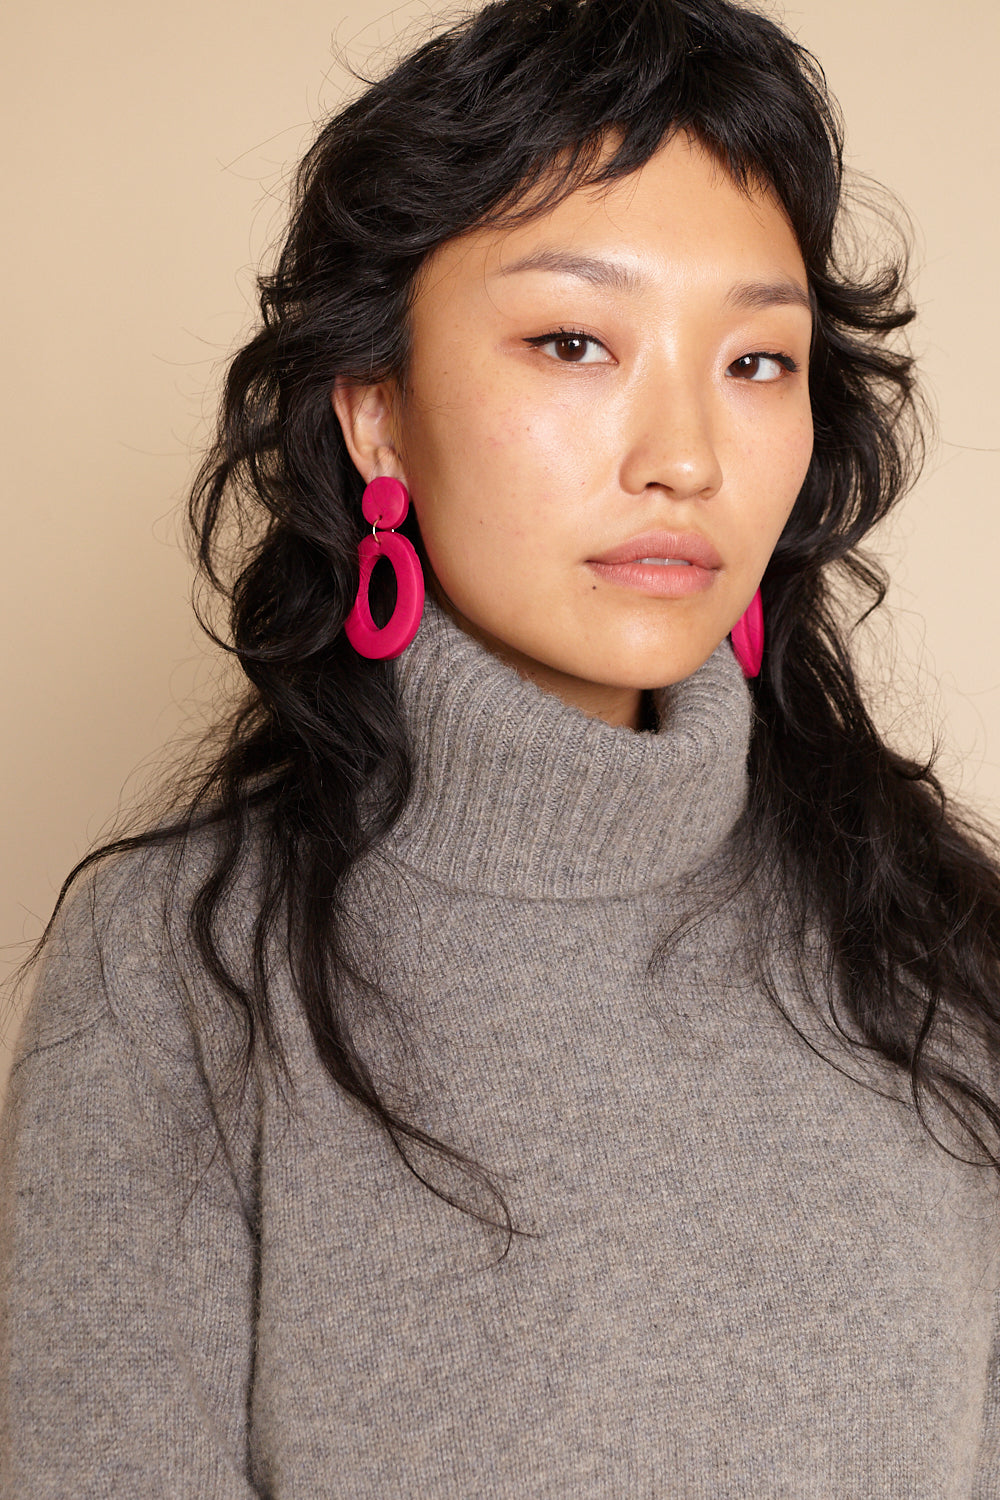 Jemma Earrings in Fuchsia